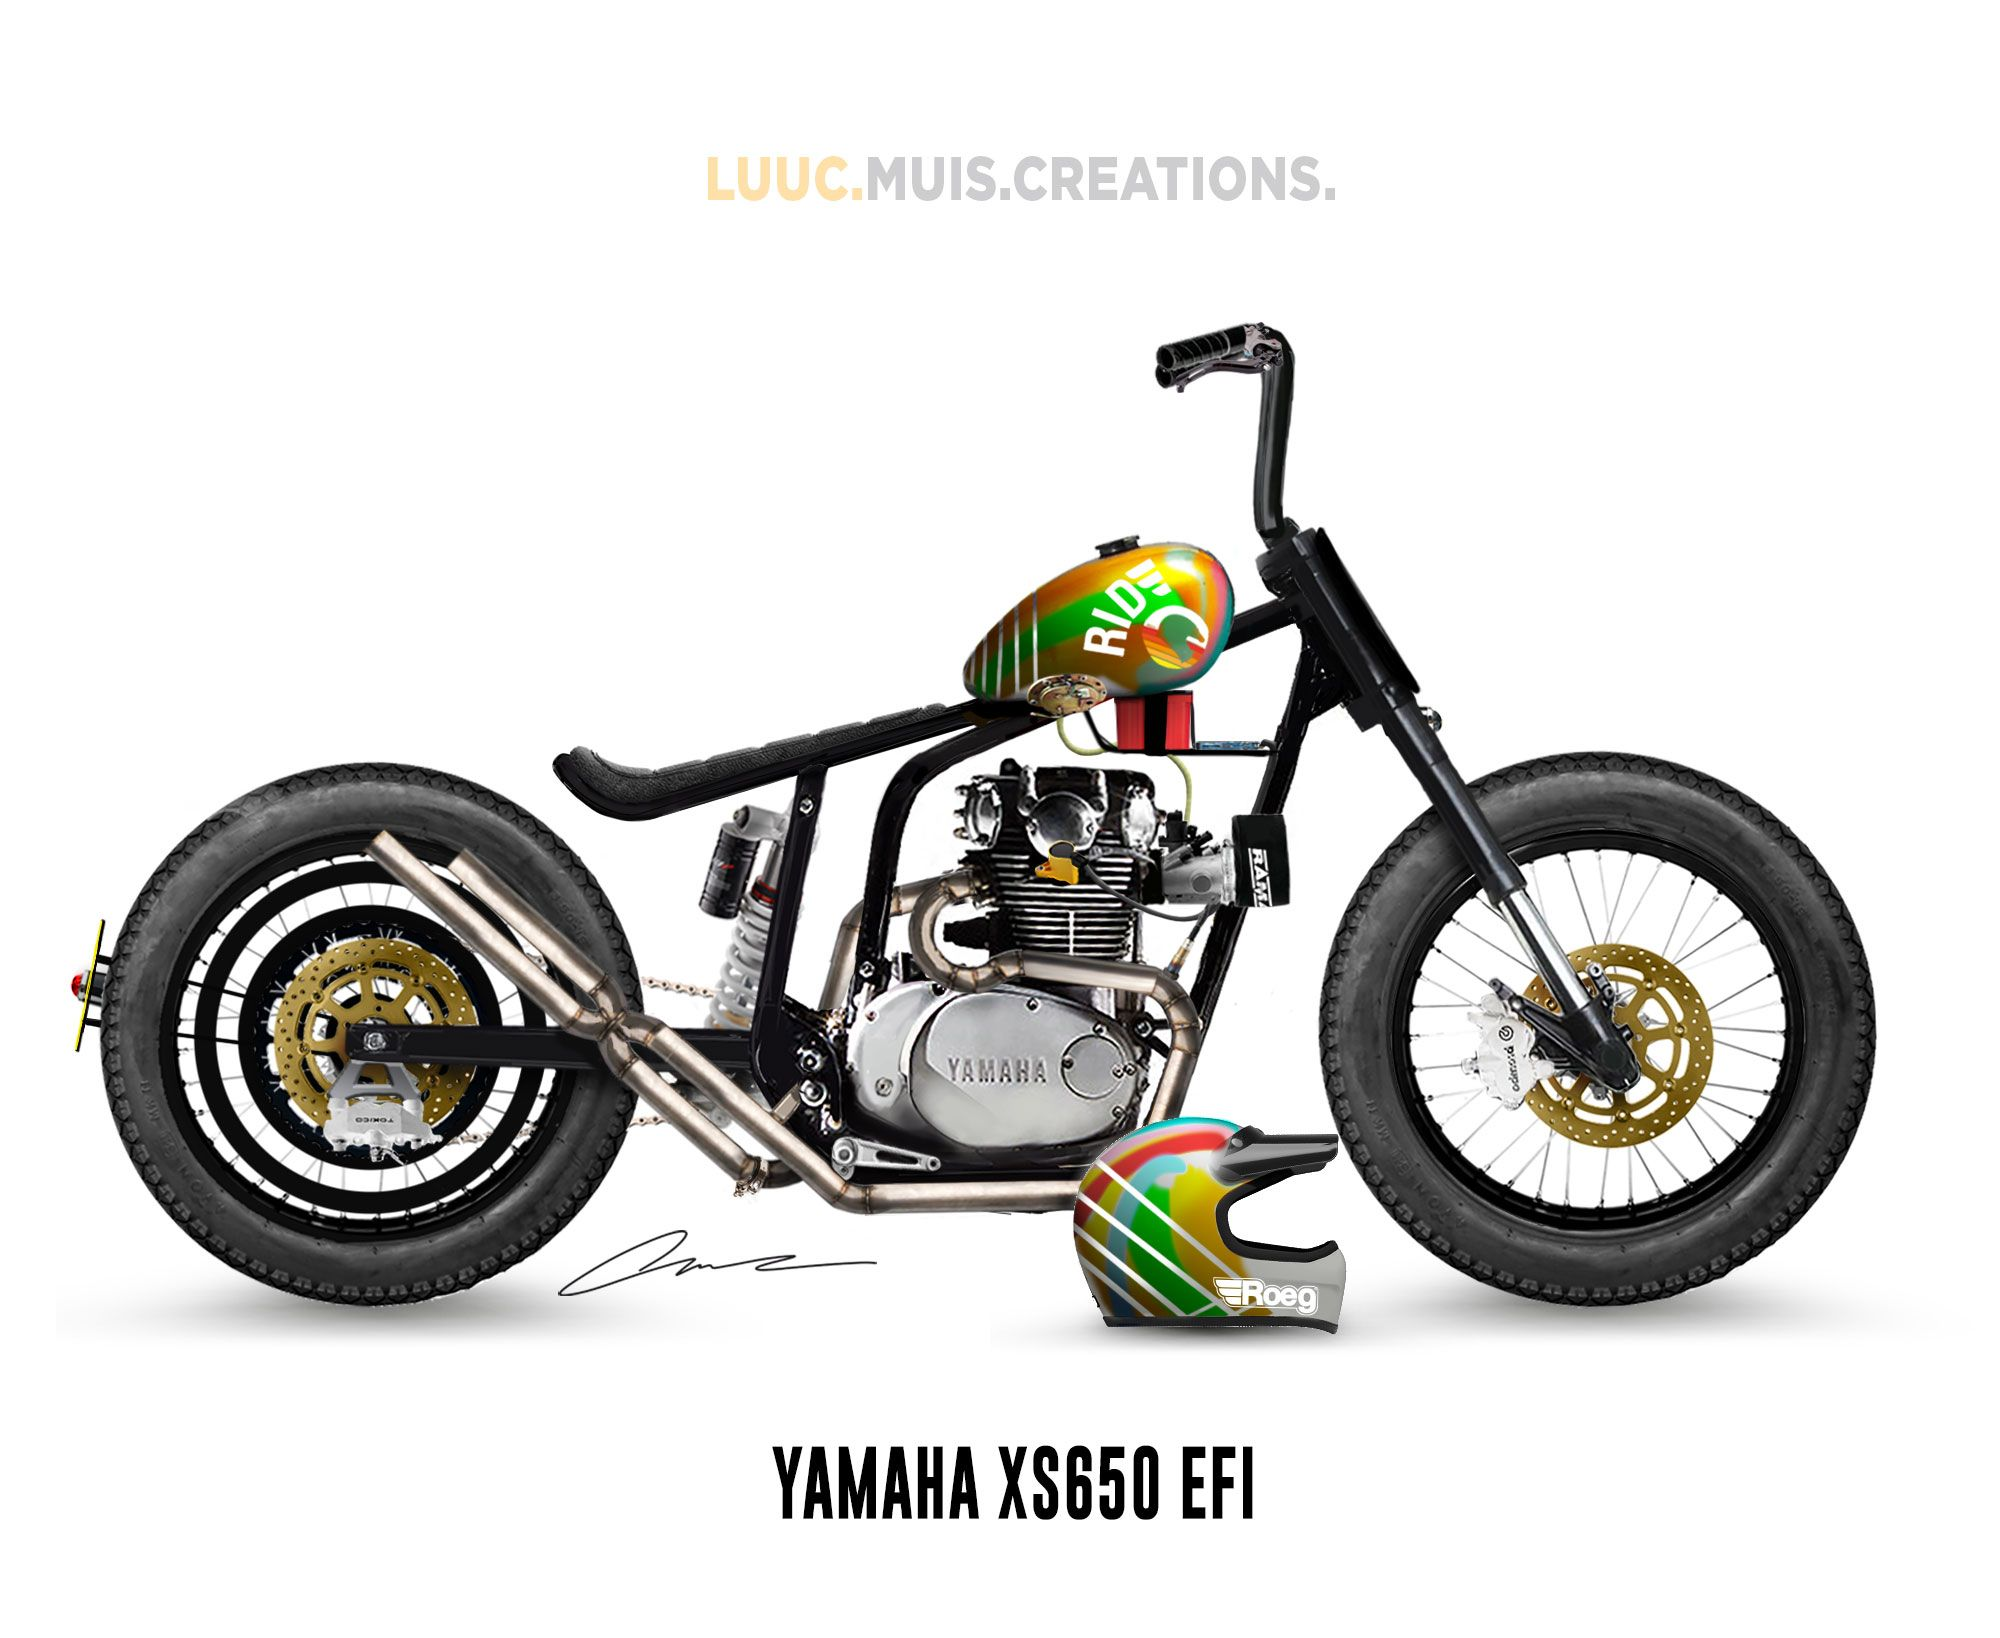 Yamaha XS650 with MT07 ignition and EFI in a bobber